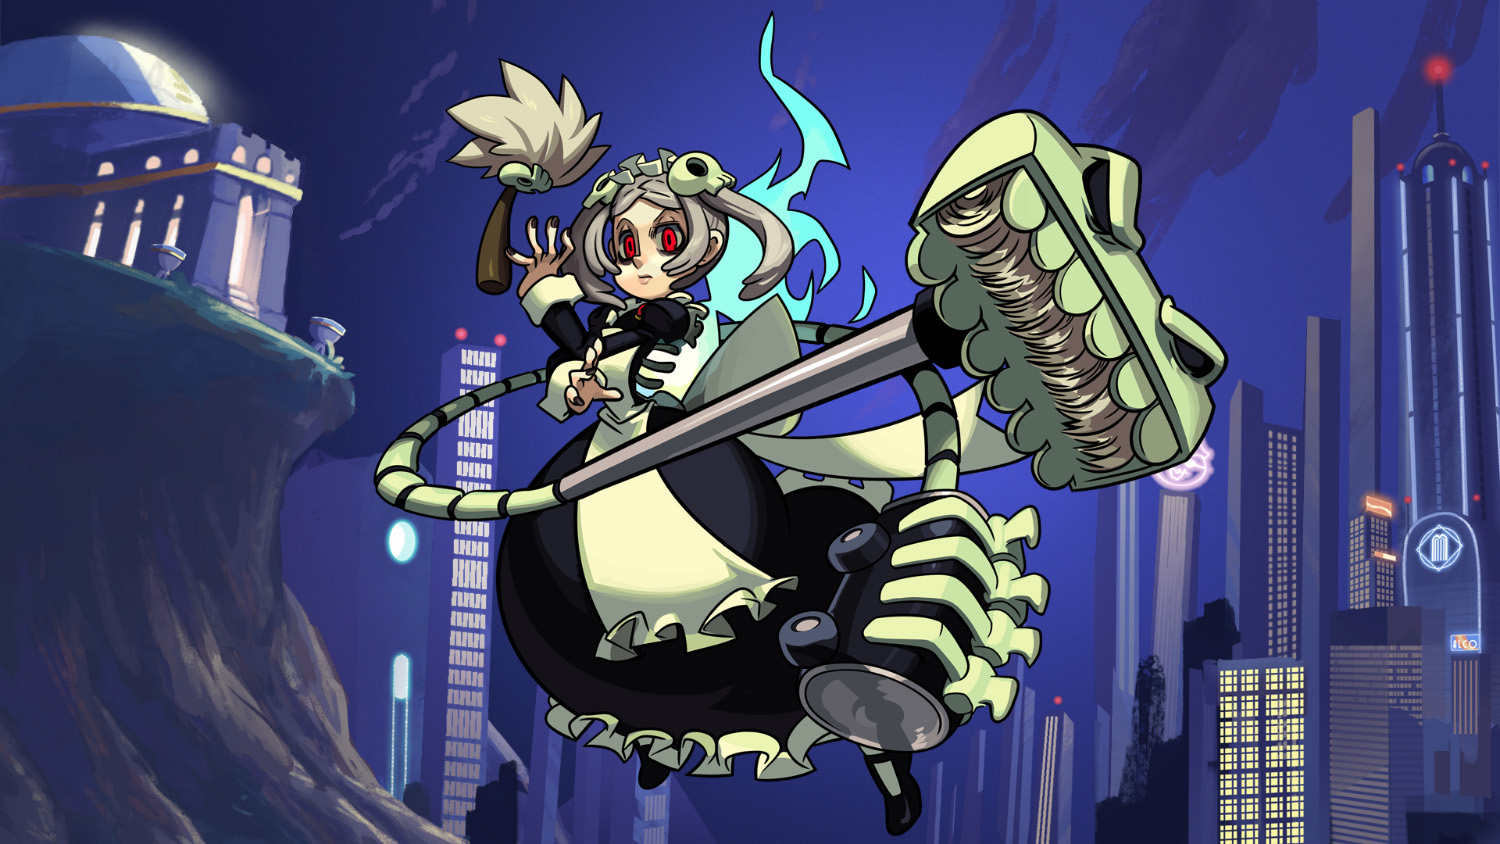 Apple feature art for  Skullgirls Mobile.  Art created in part by my art team and myself. © Hidden Variable / Autumn